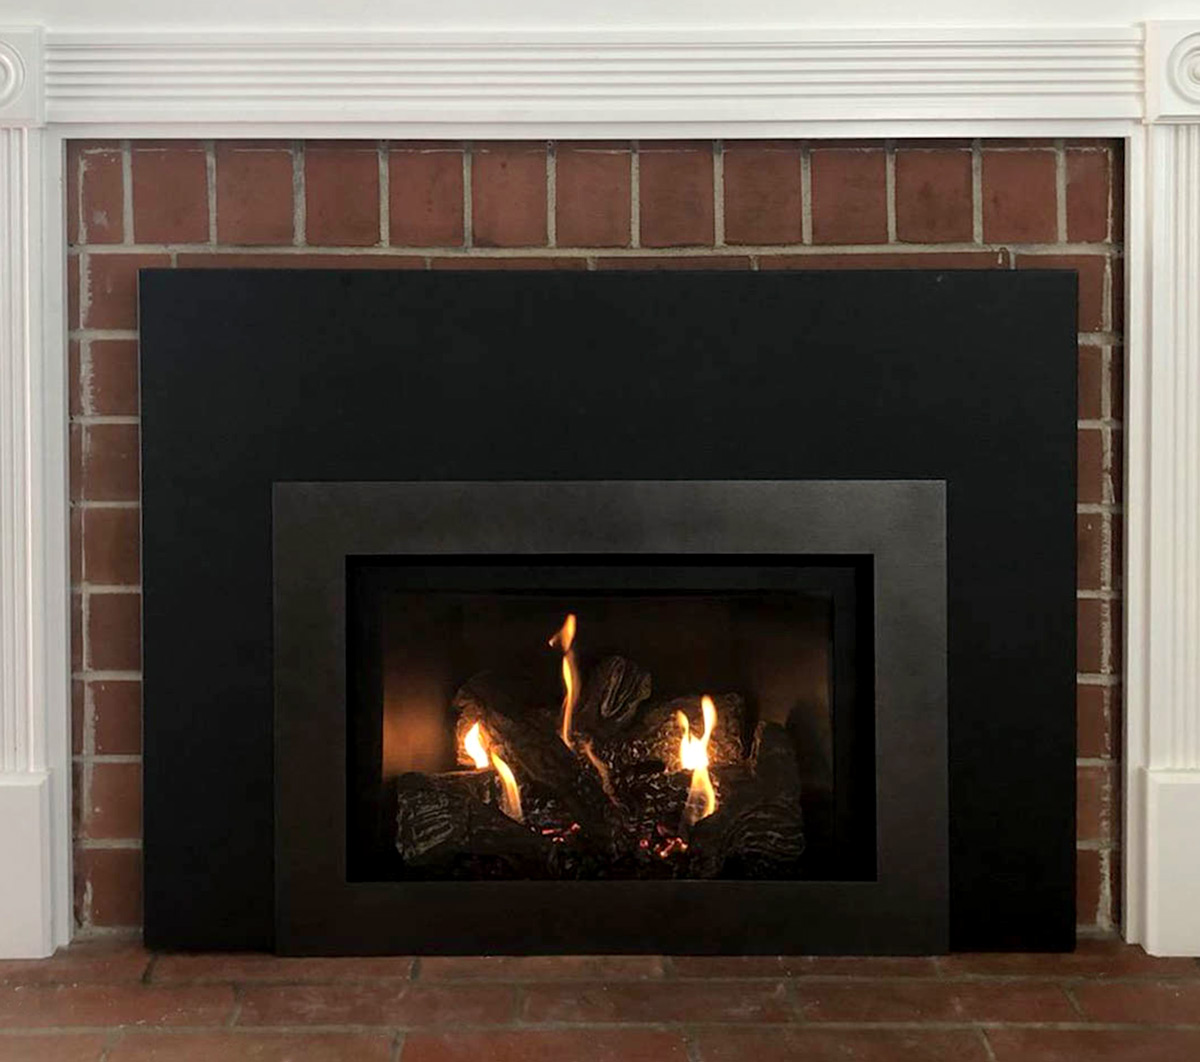 Electric Fireplace Gas Insert - After